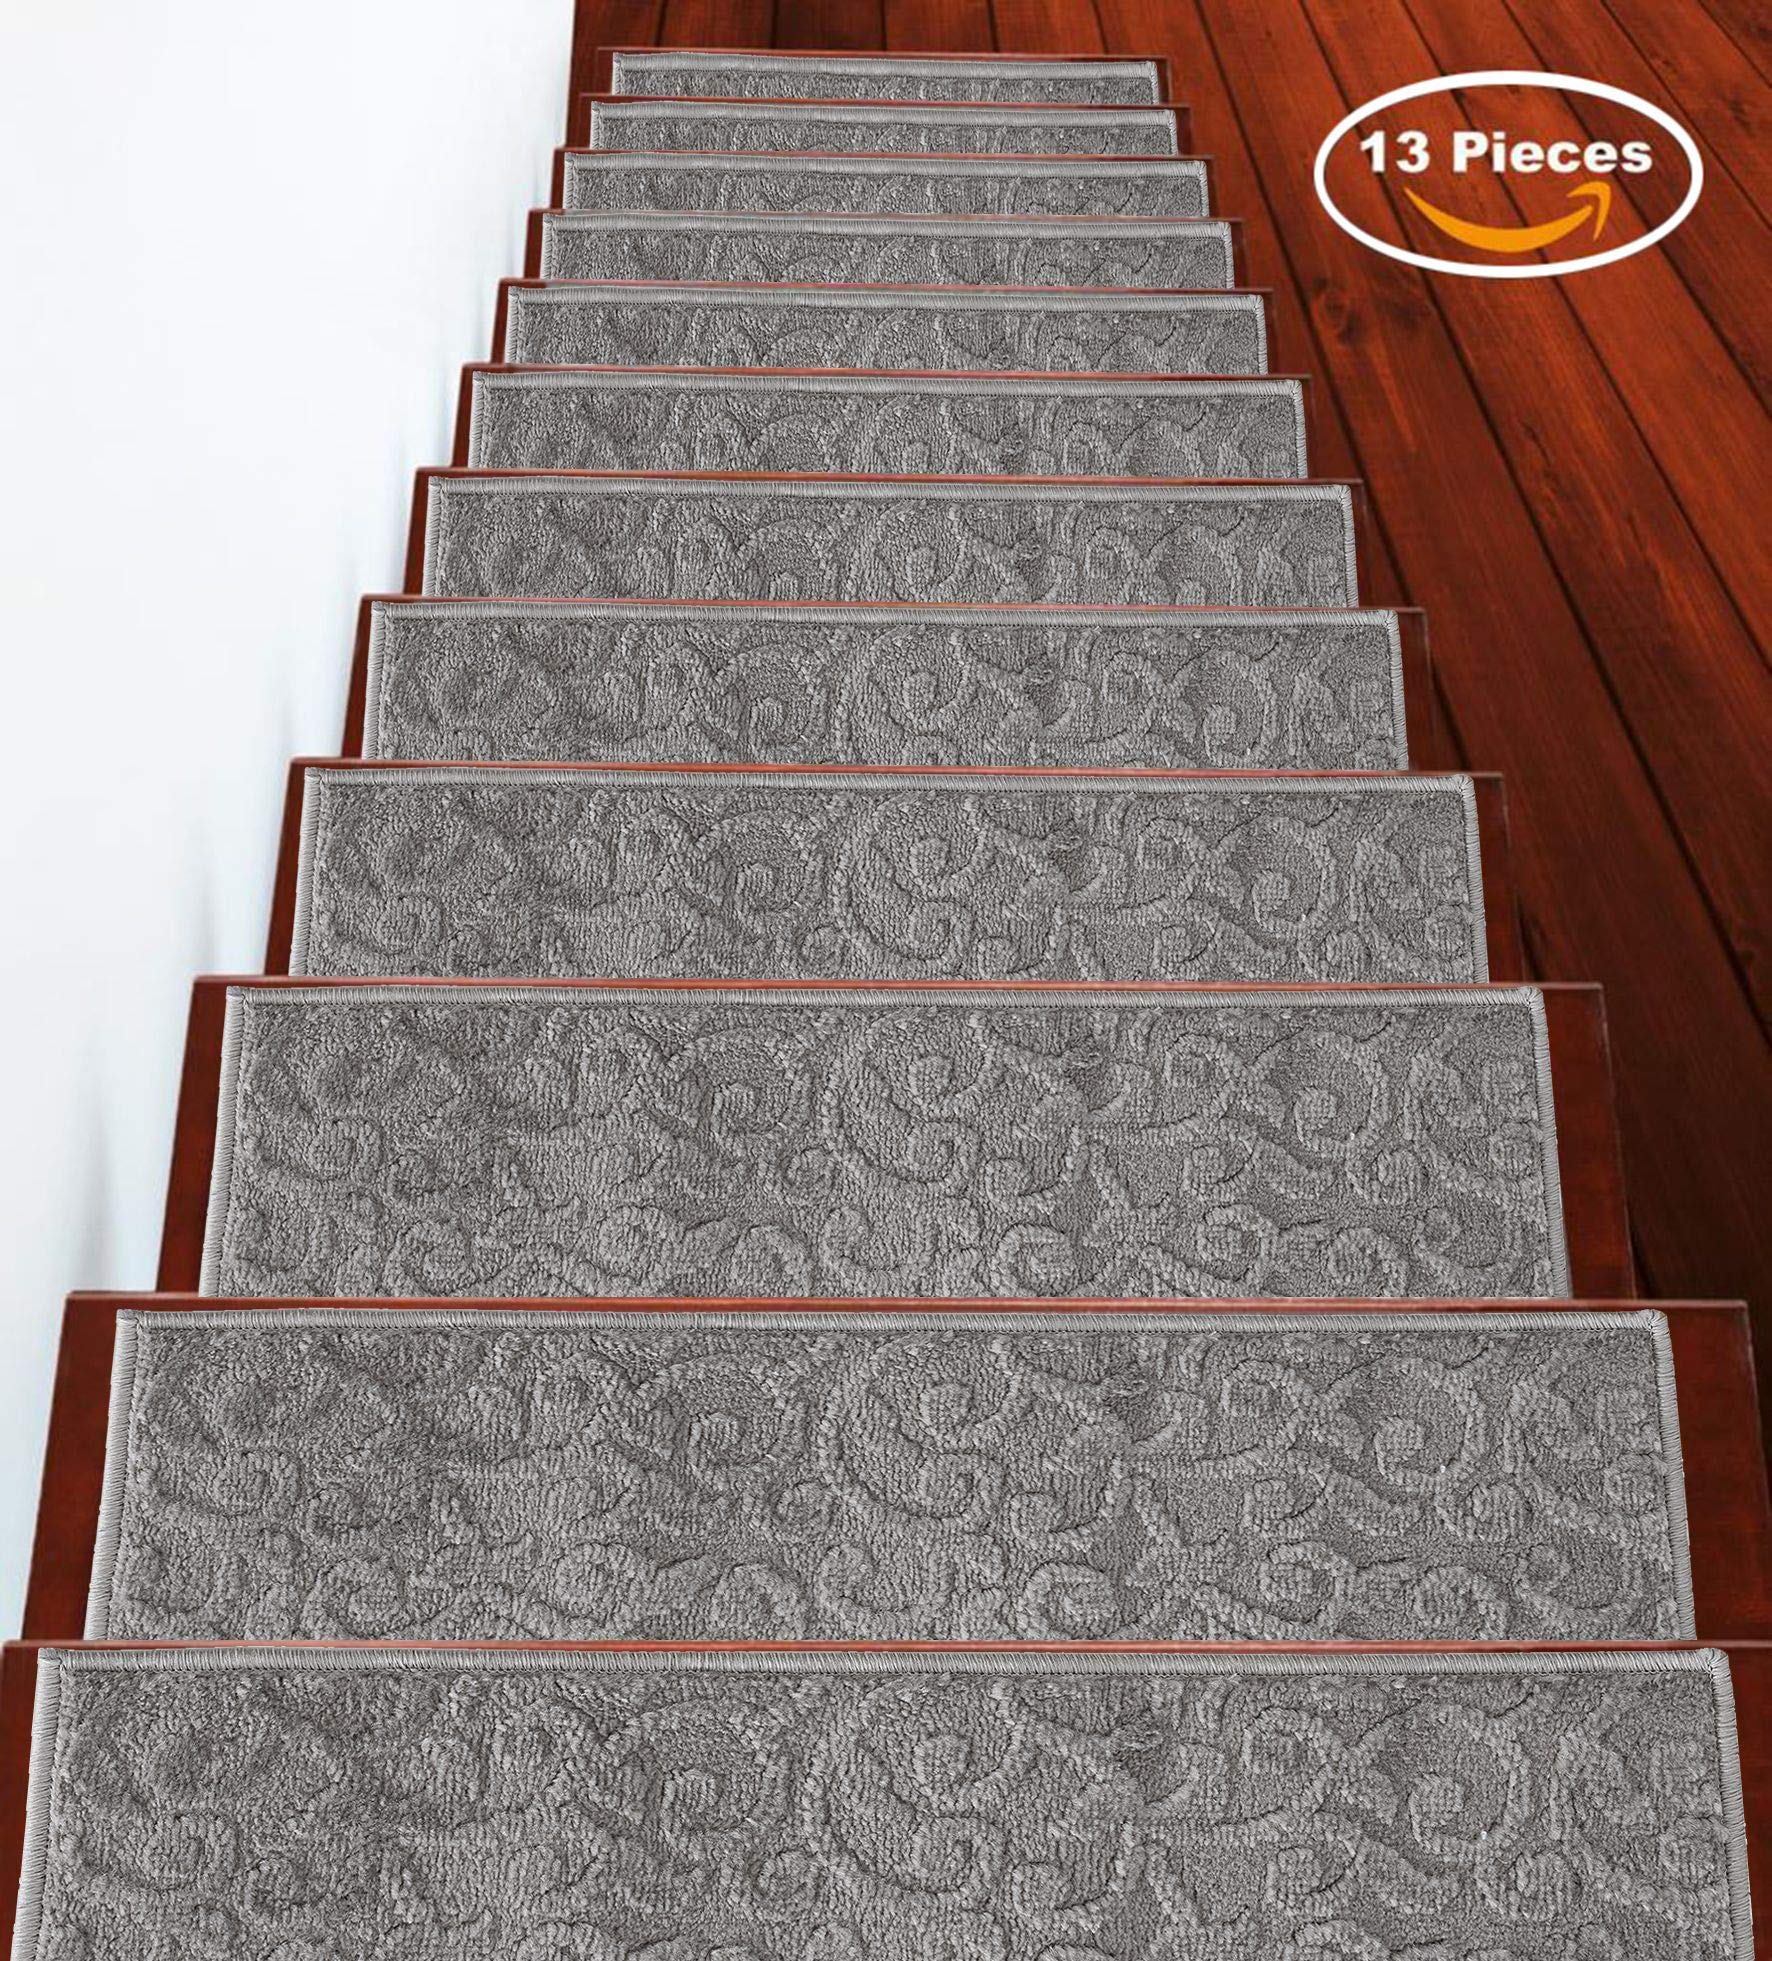 Sussexhome Stair Treads 9 inch by 28 inch by Ella's World Leaves Collection Contemporary, Cozy, Vibrant and Soft Stair Treads, Gray, Pack of 13 [100% Polypropylene] by Sussexhome